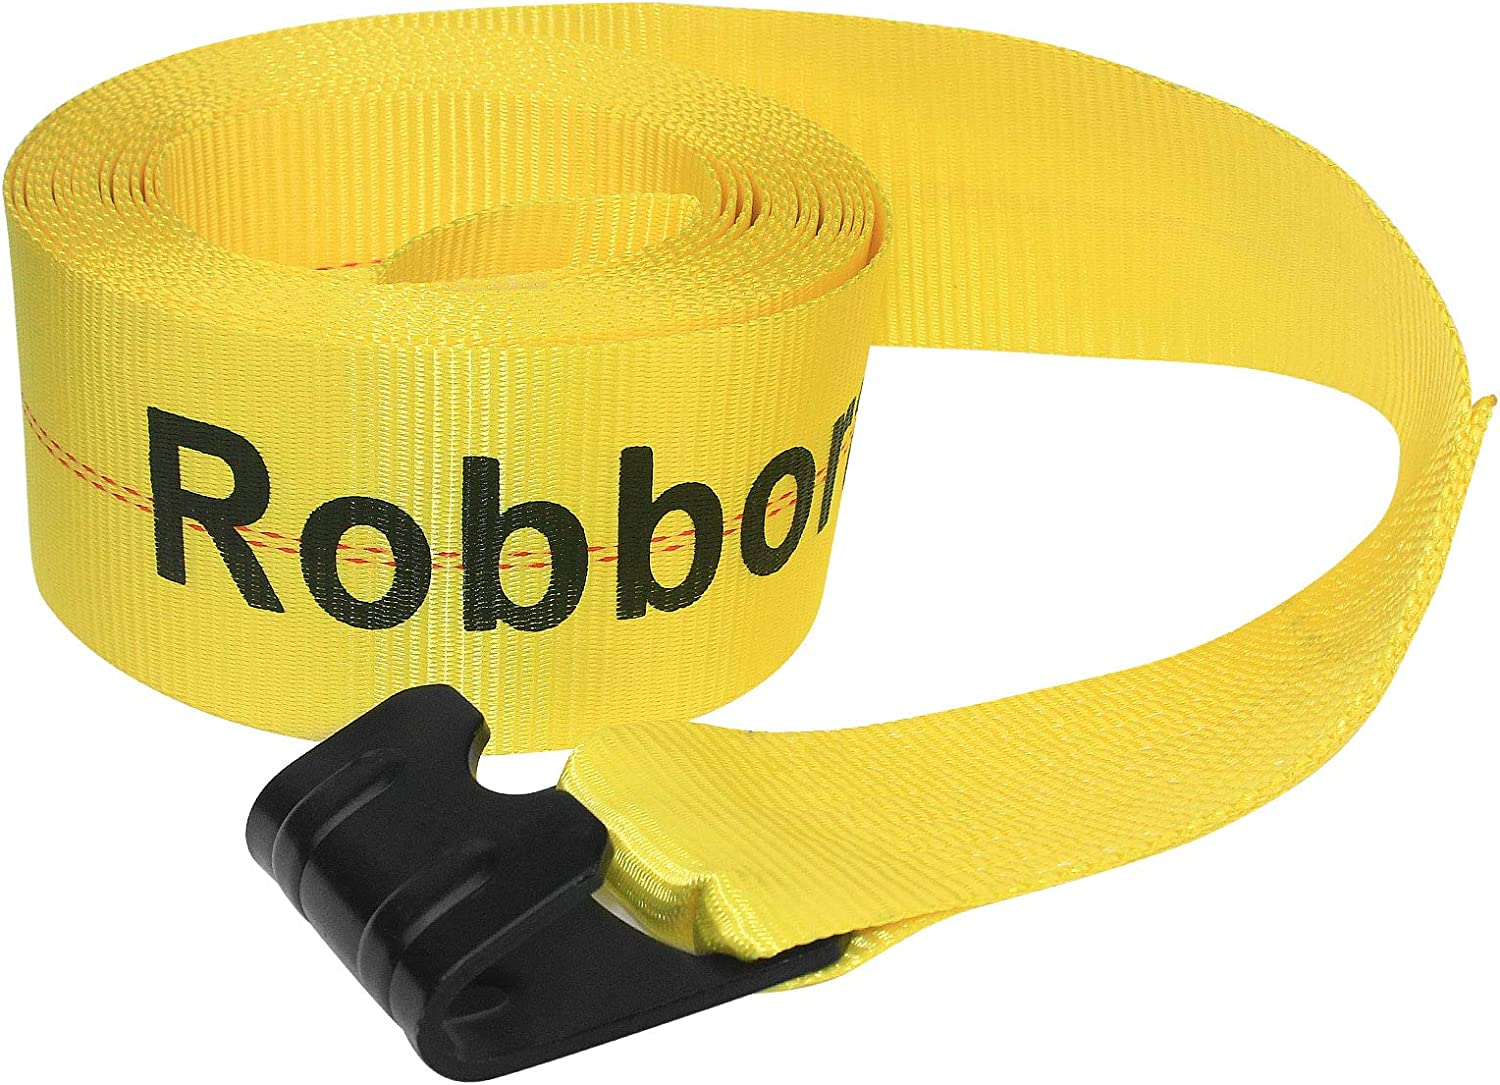 Trailers Robbor 4x30 Winch Strap with Flat Hook 10PK 16500lbs Heavy Duty Polyester Tie Down Cargo Strap for Flatbeds and Trucks